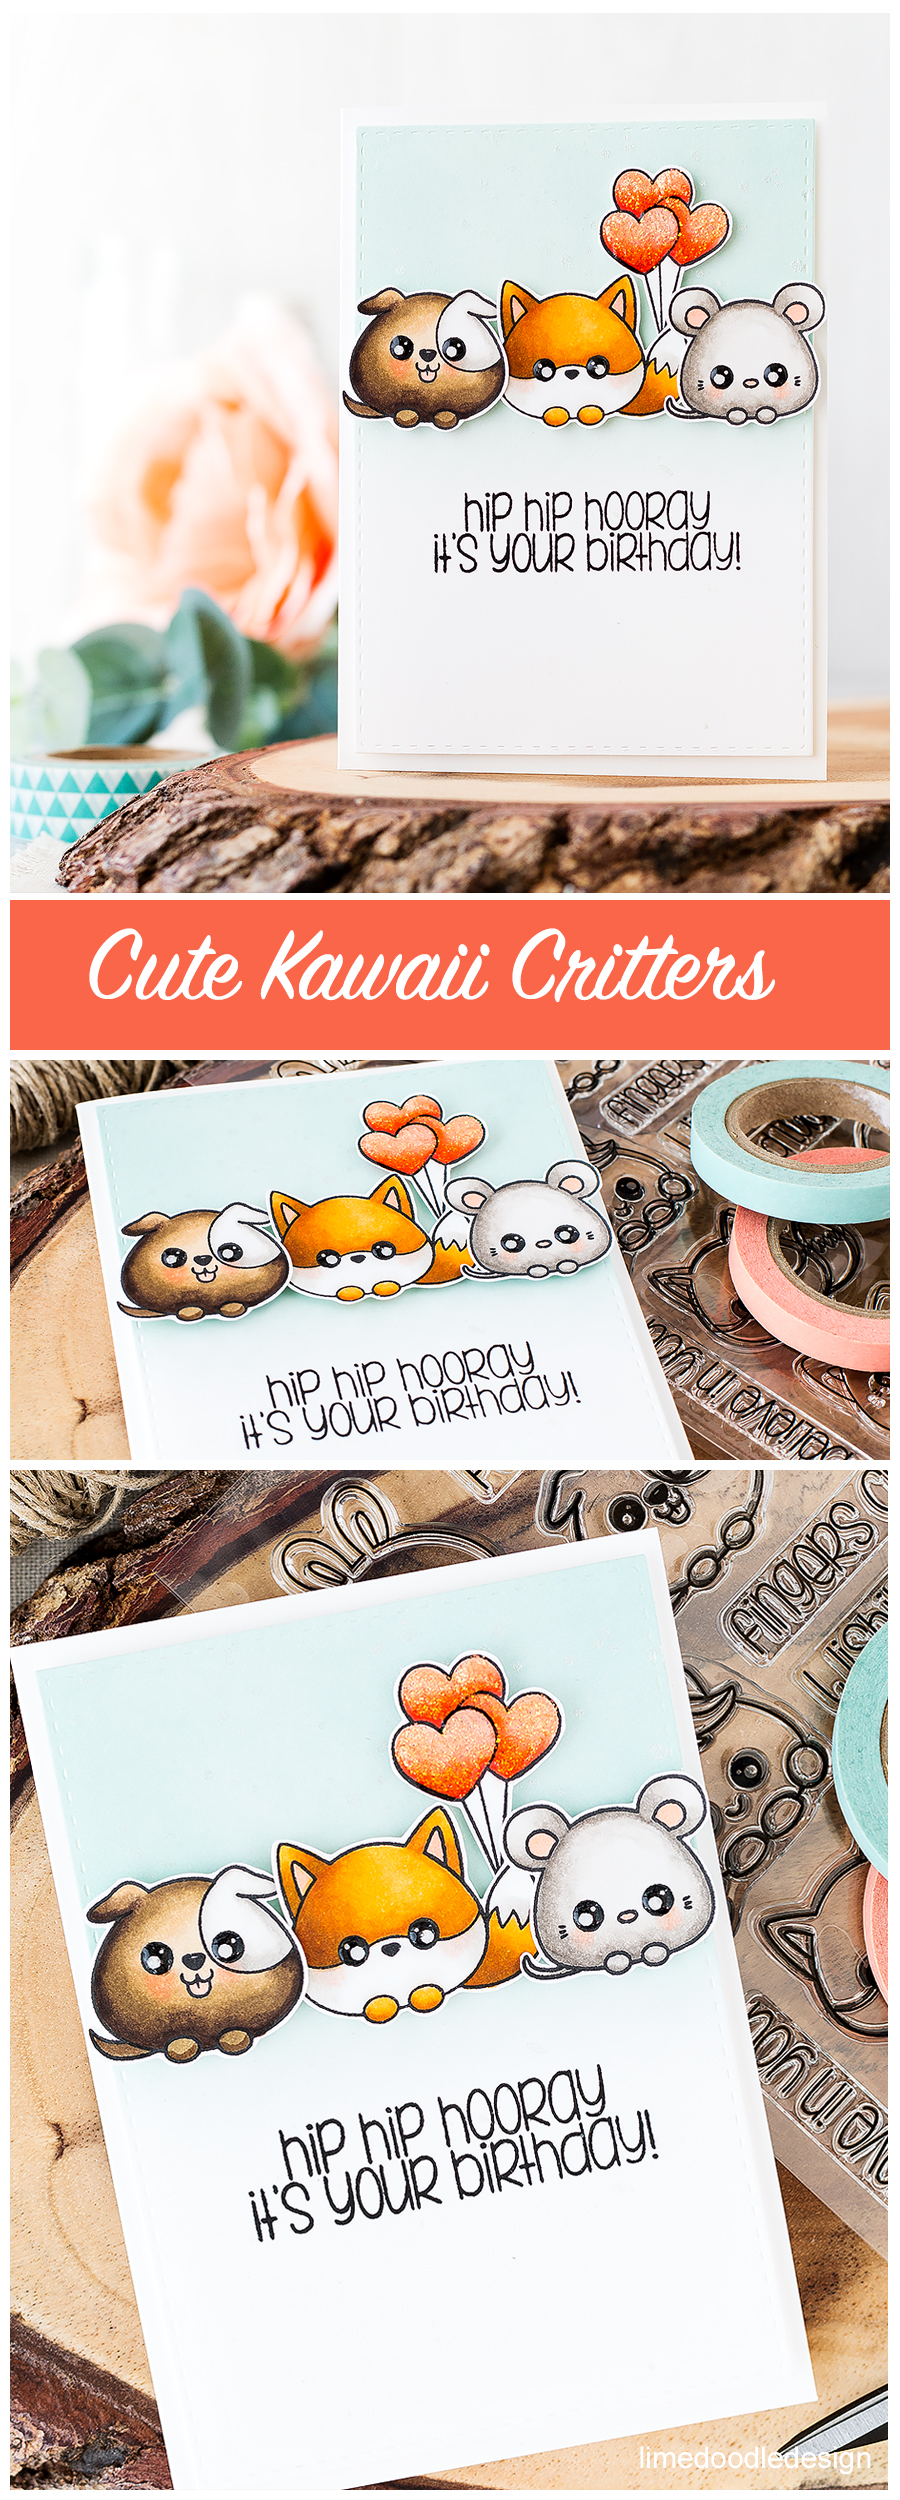 Cute kawaii critters. Find out more about this card by clicking on the following link: https://limedoodledesign.com/2016/08/cute-kawaii-critters/